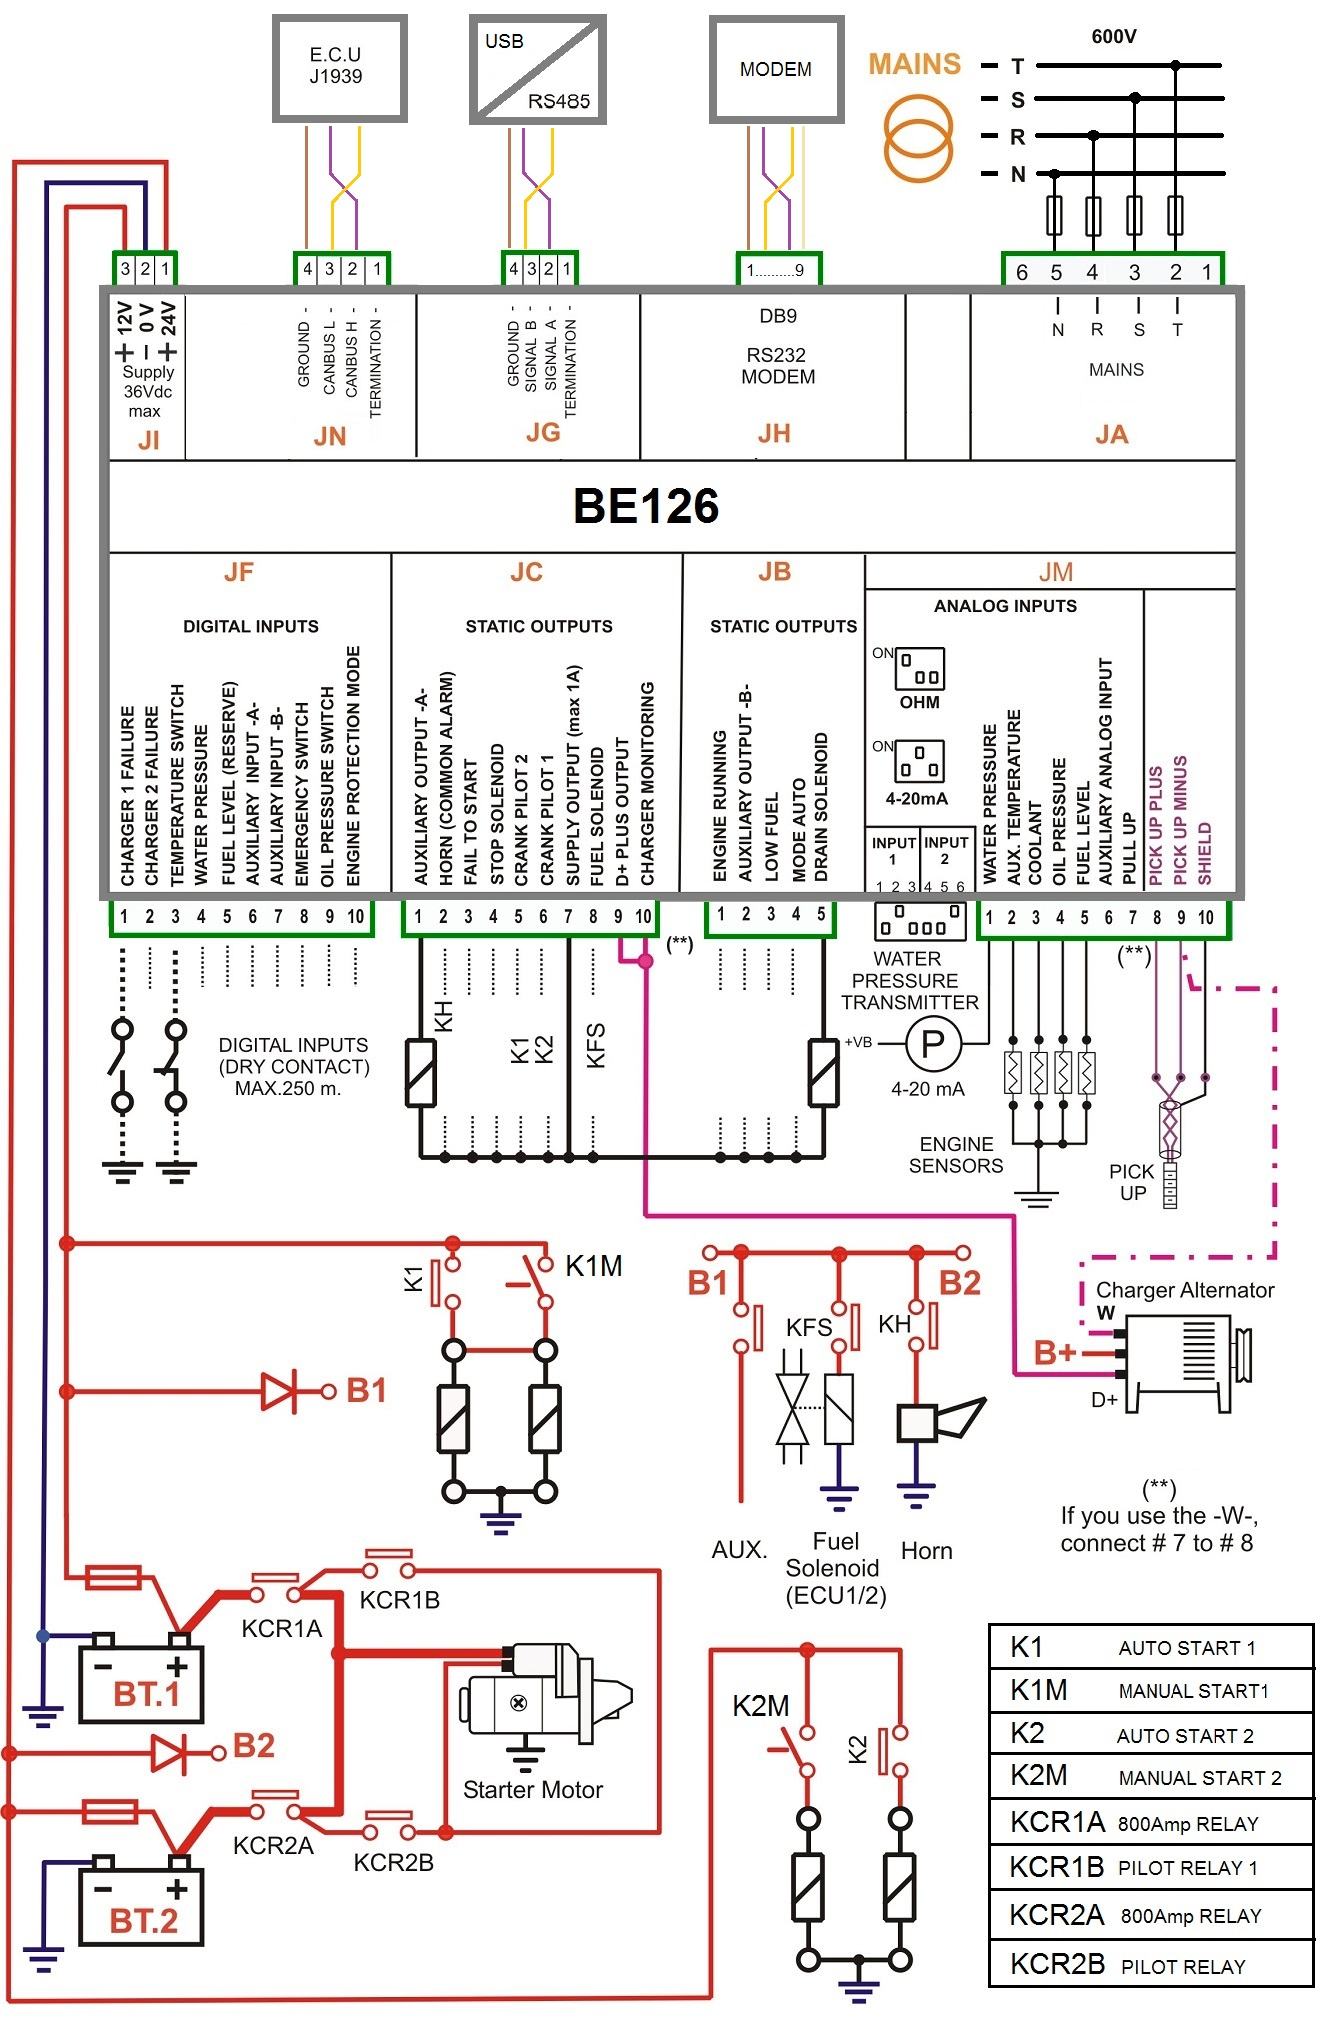 NFPA20 fire pump controller wiring diagram control wiring diagrams lighting control panel wiring diagram electrical control panel wiring diagrams at edmiracle.co